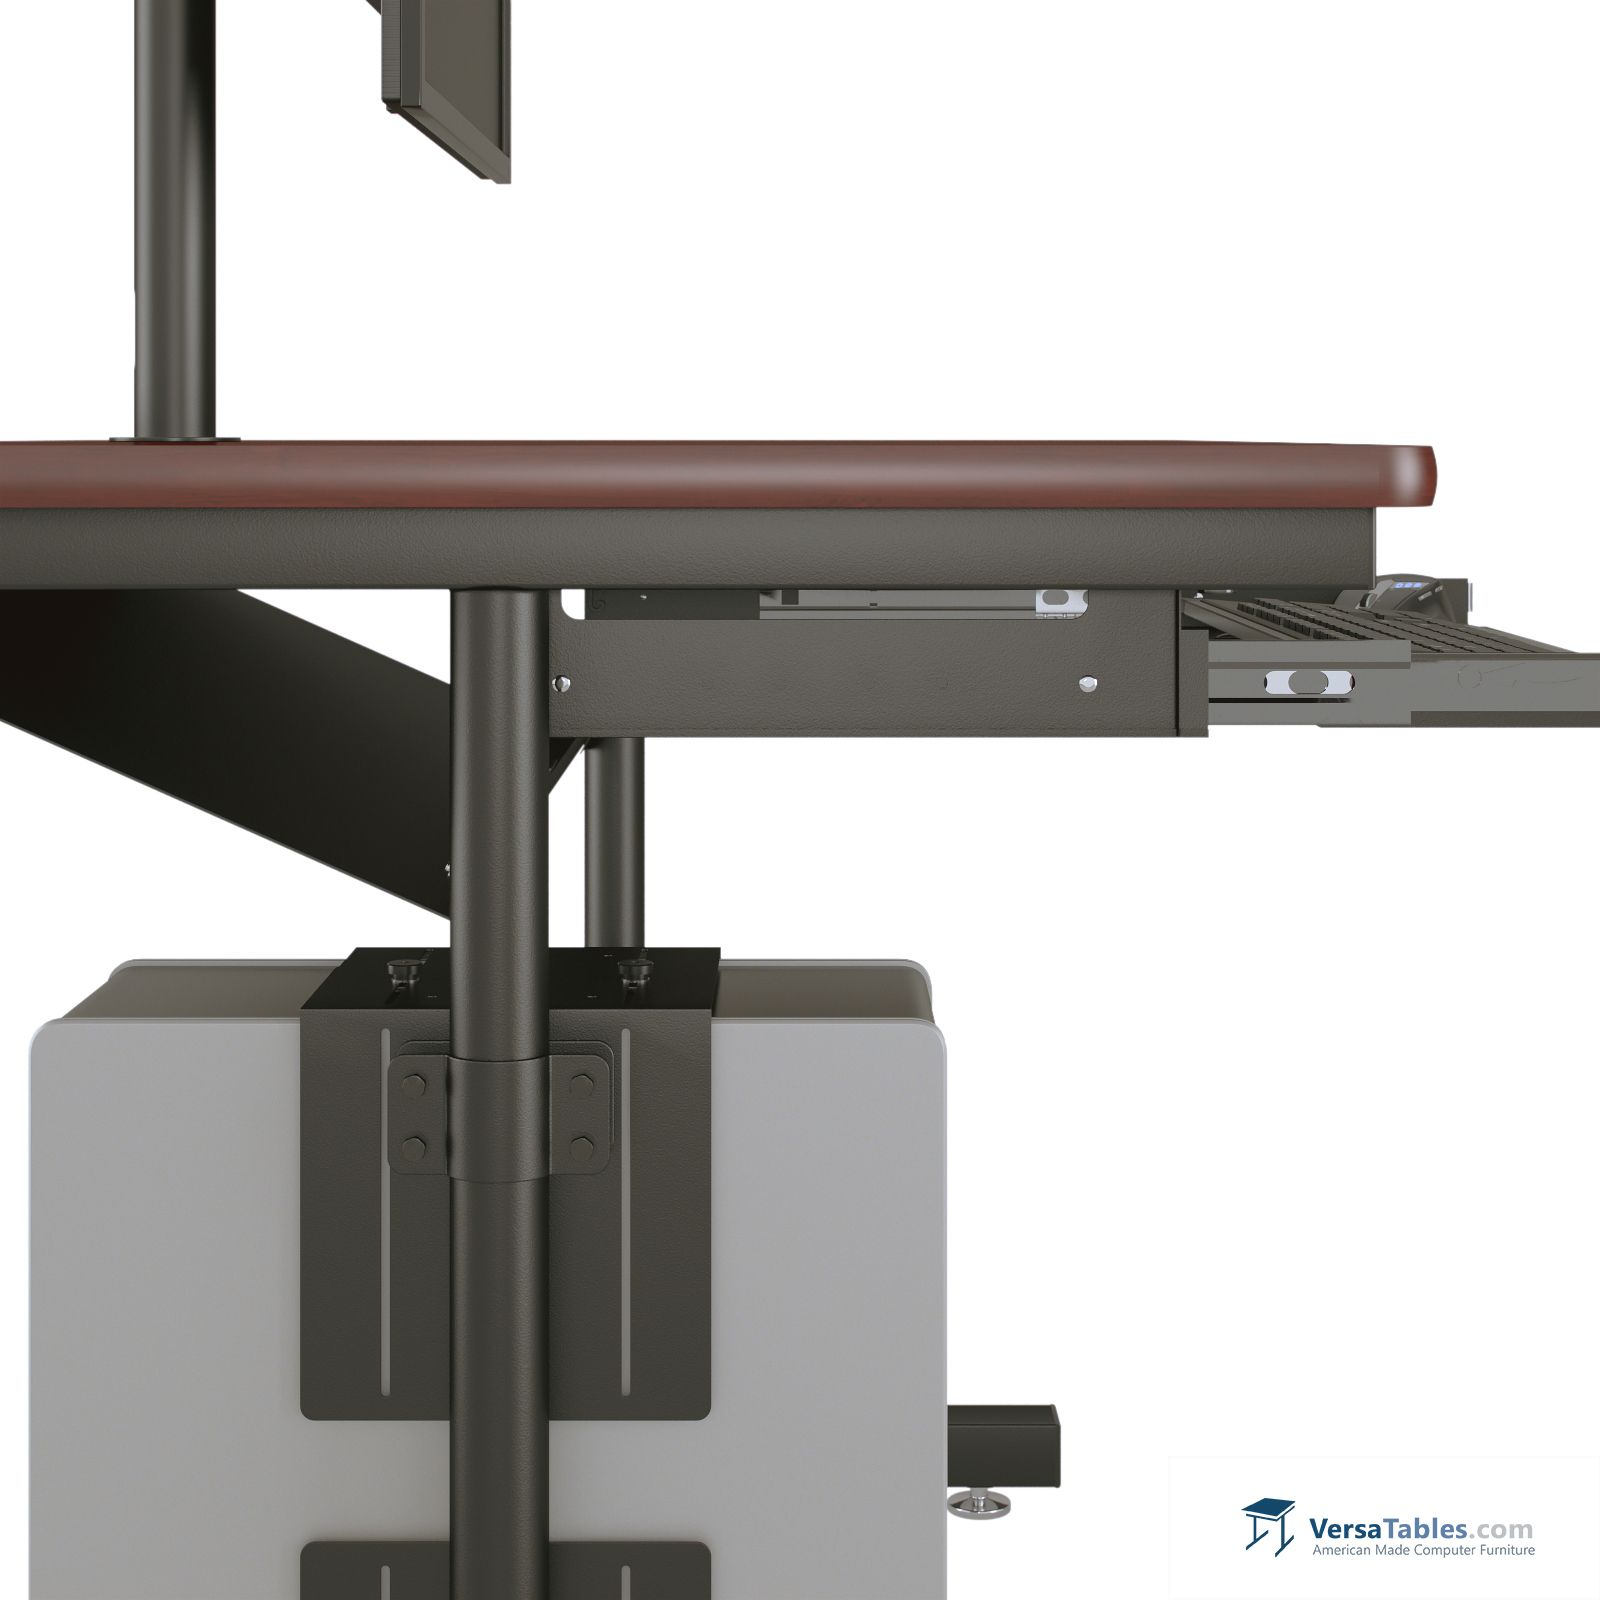 Pin by Versa Tables on Basic puter Table BCT Series